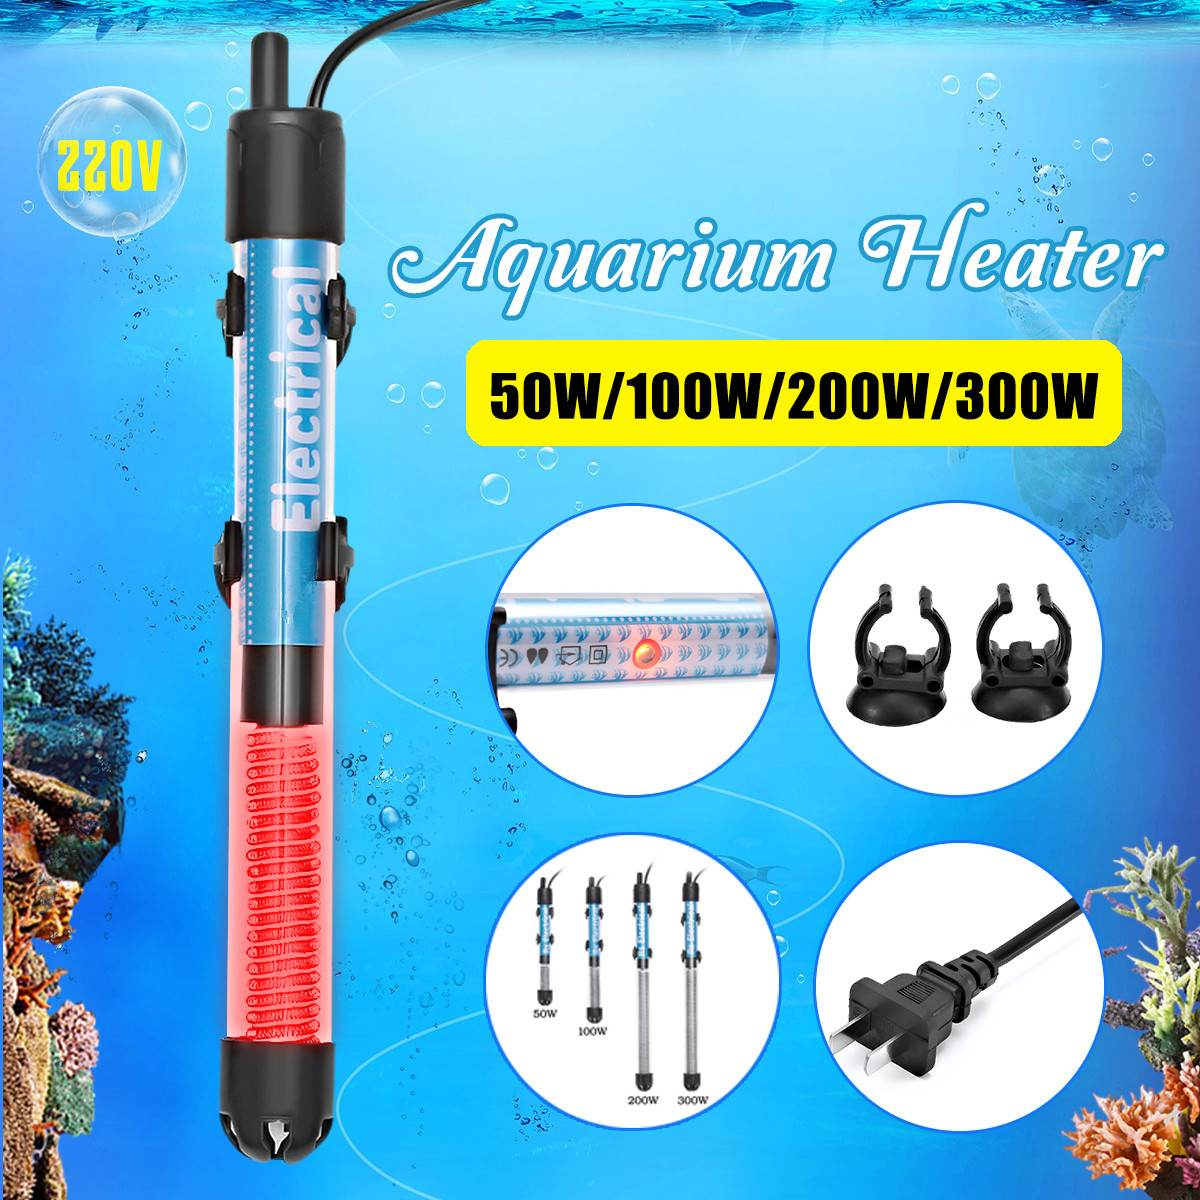 220V 50W/100W/200W/300W Mini Submersible Aquarium Heater Adjustable Temperature Aquarium Fish Tank Water Heater